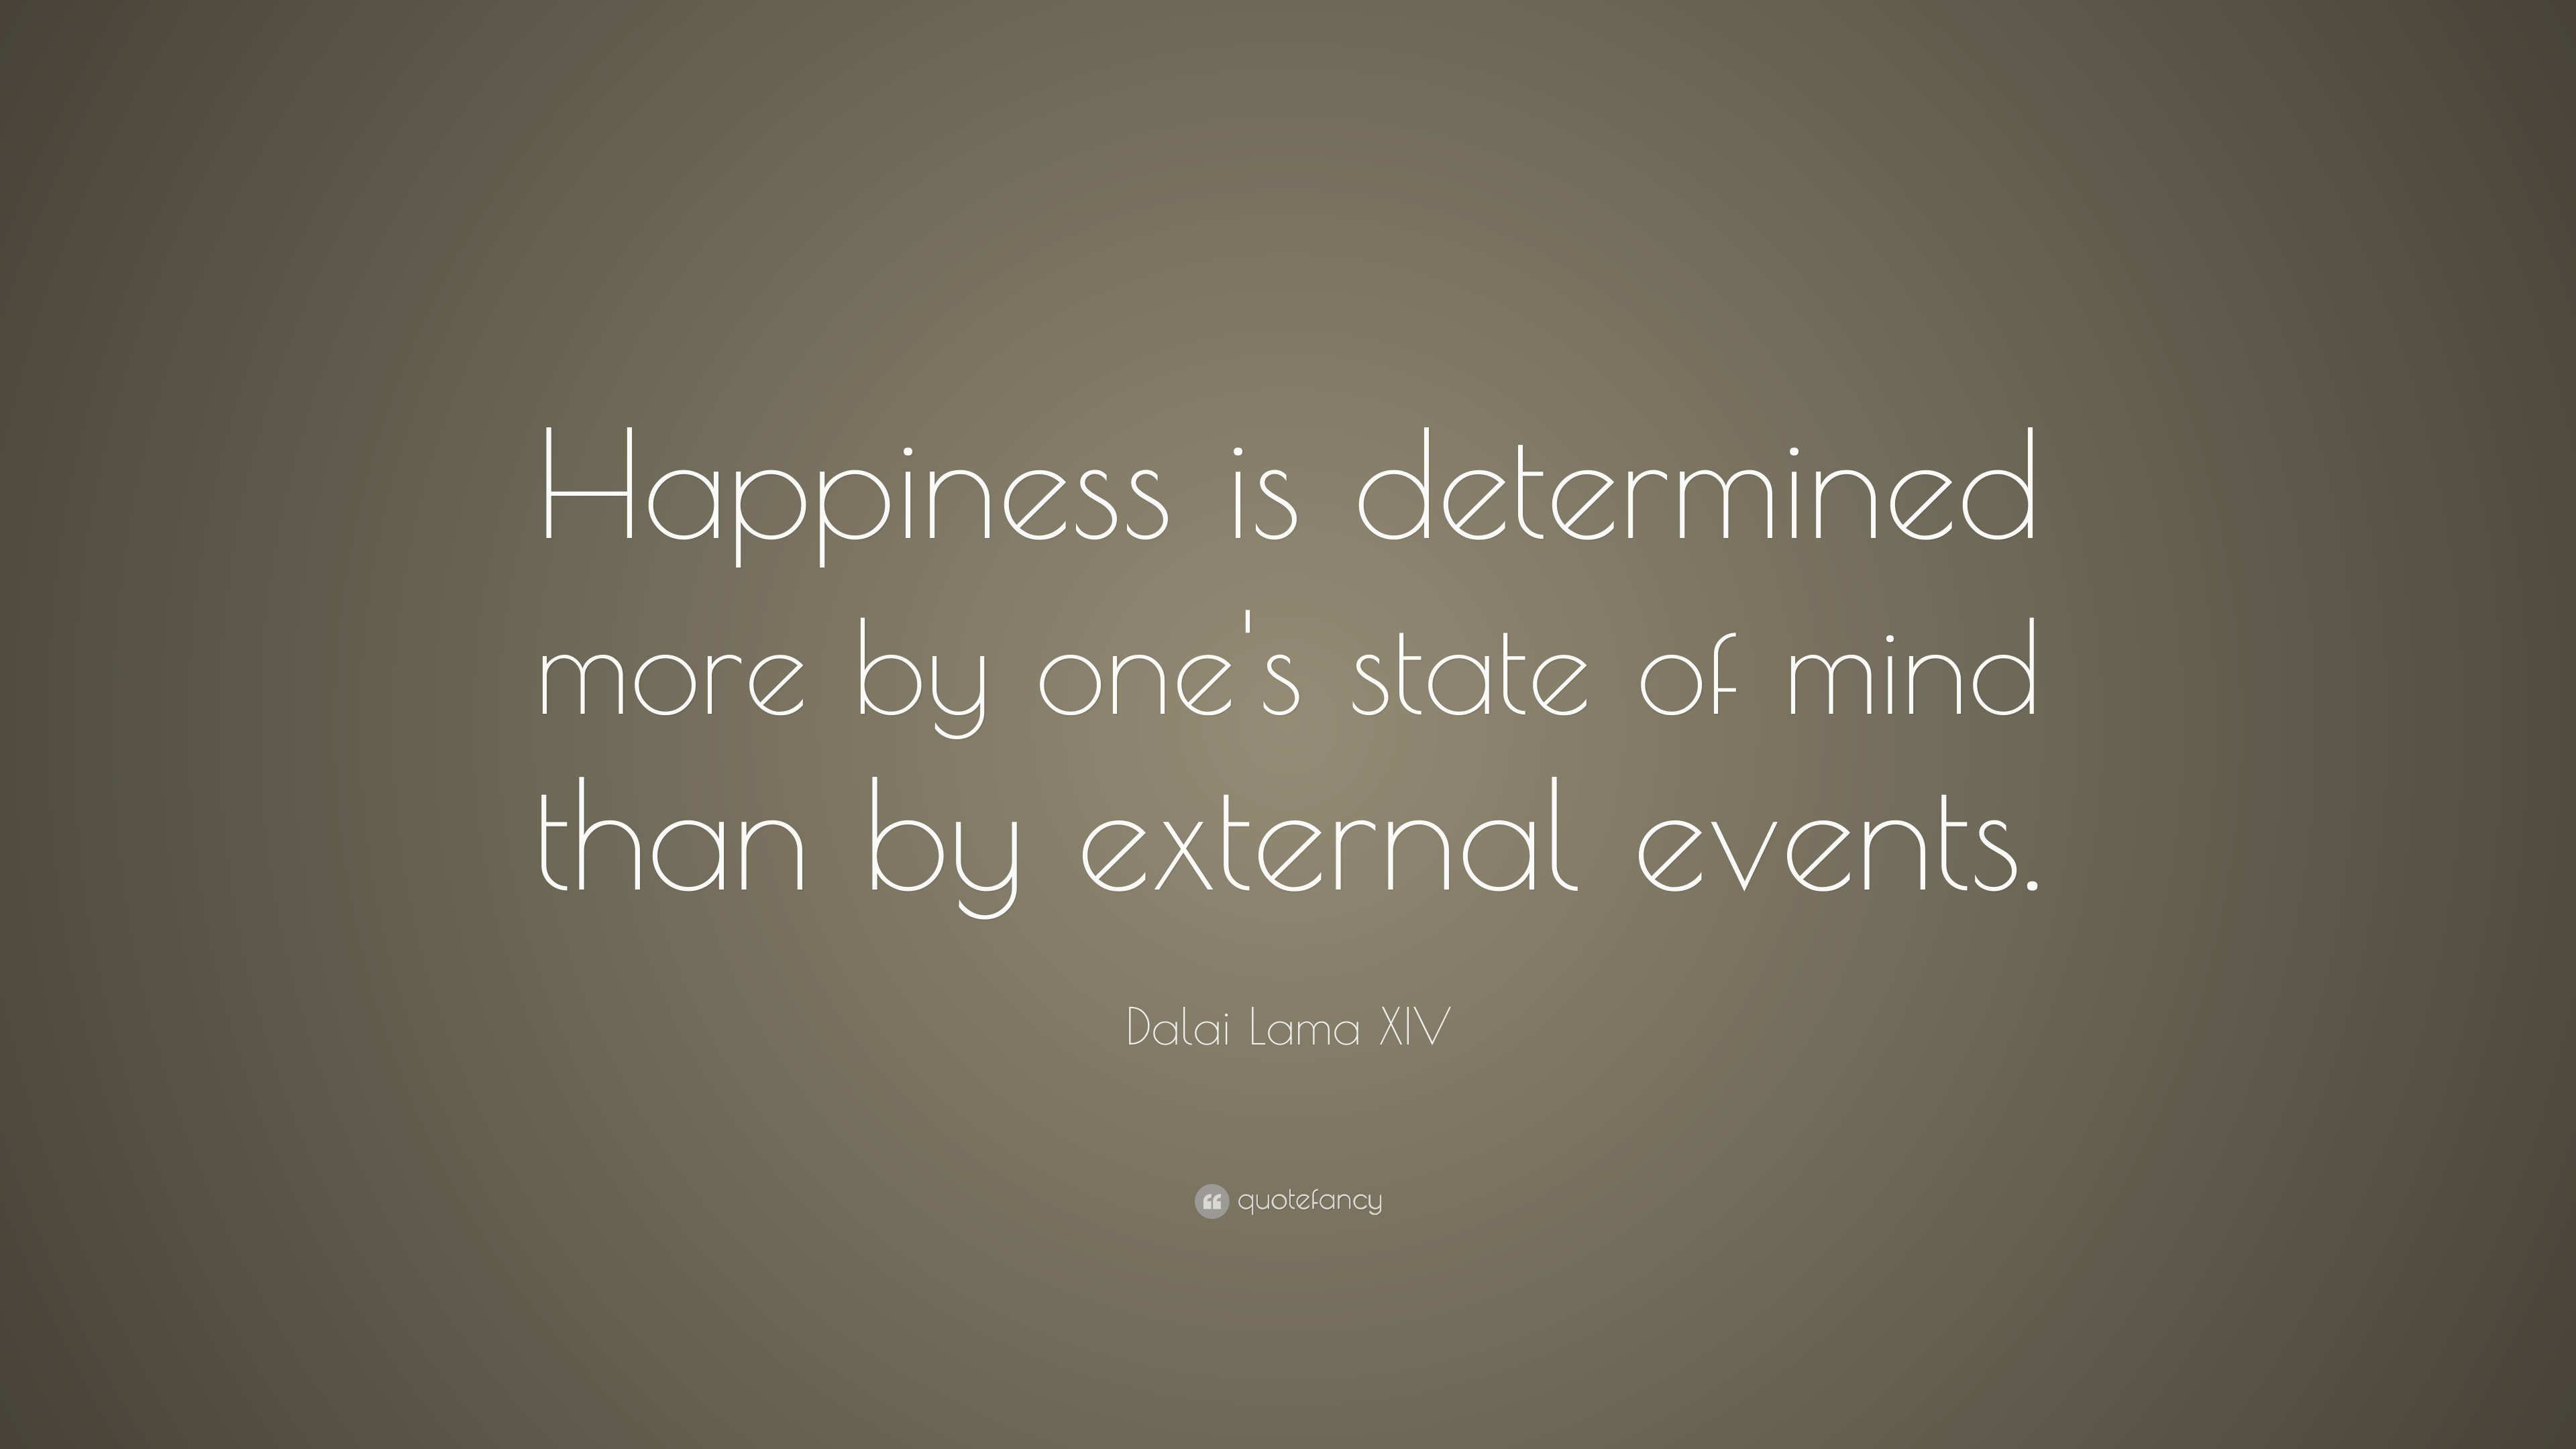 Dalai Lama Xiv Quote Happiness Is Determined More By Ones State